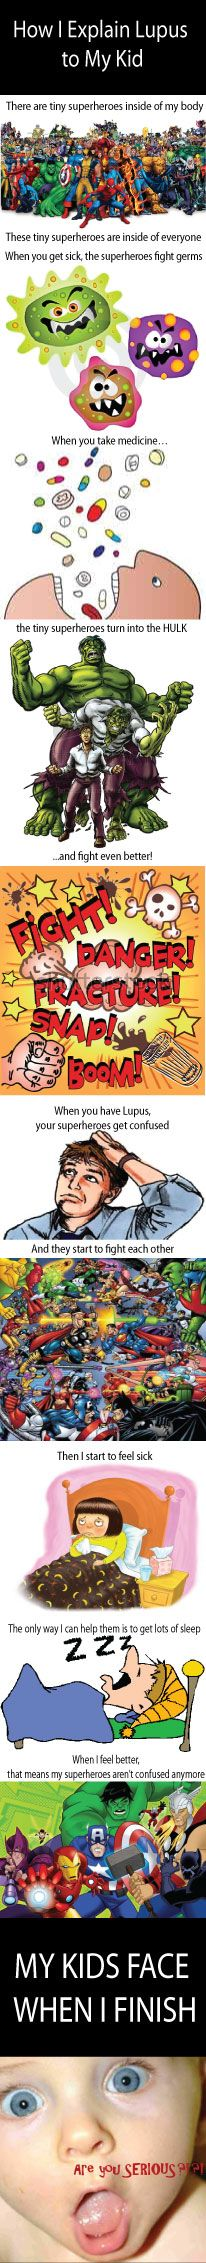 A way to explain #lupus to a child